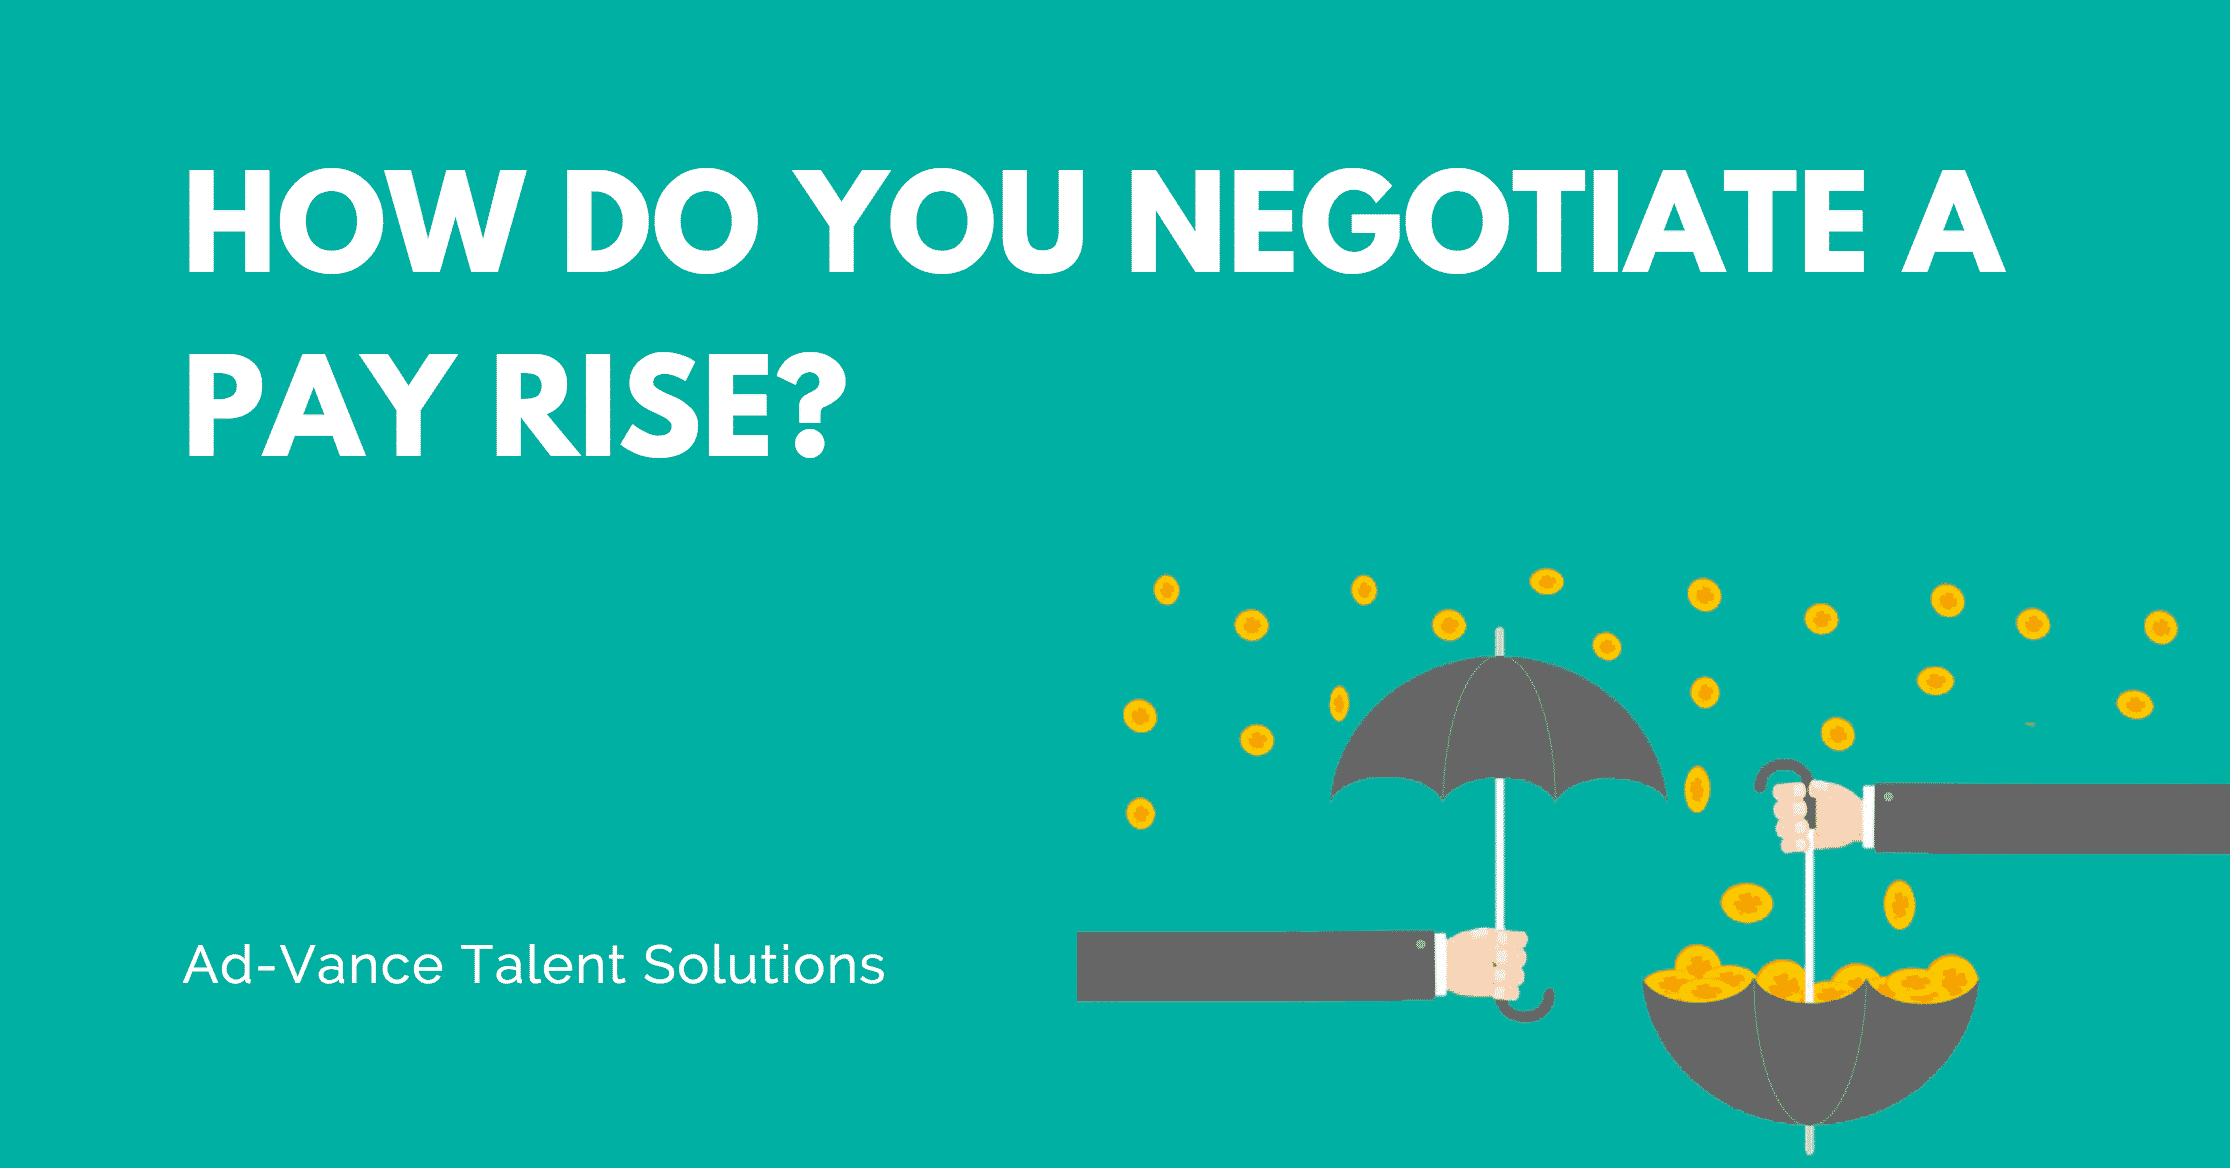 How Do You Negotiate a Pay Rise?